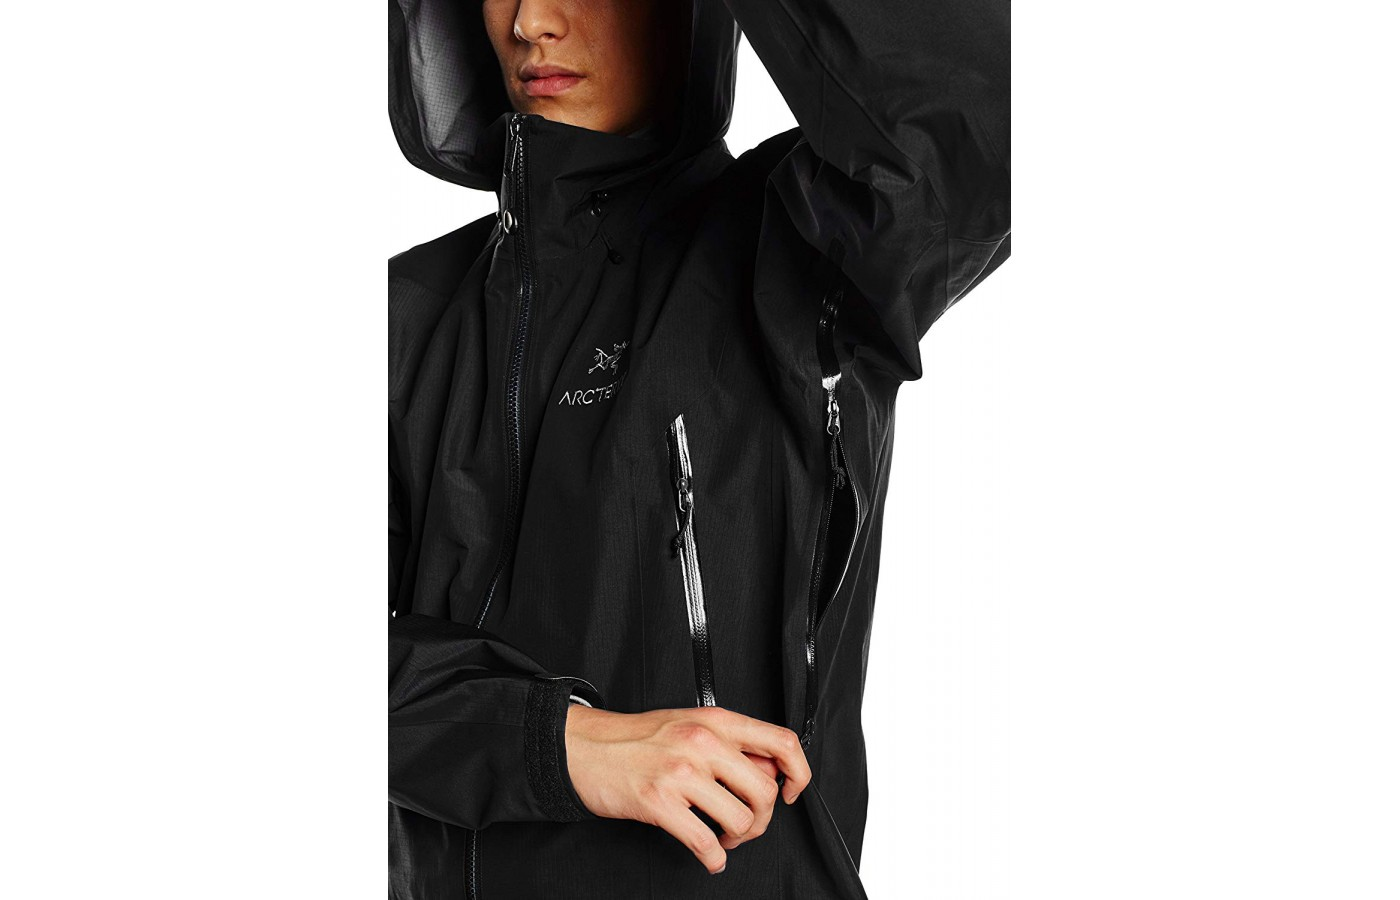 This version of the jacket has all the stellar features provided by other Arc'teryx jackets such as watertight zippers and a four-point storm hood that is adjustable.